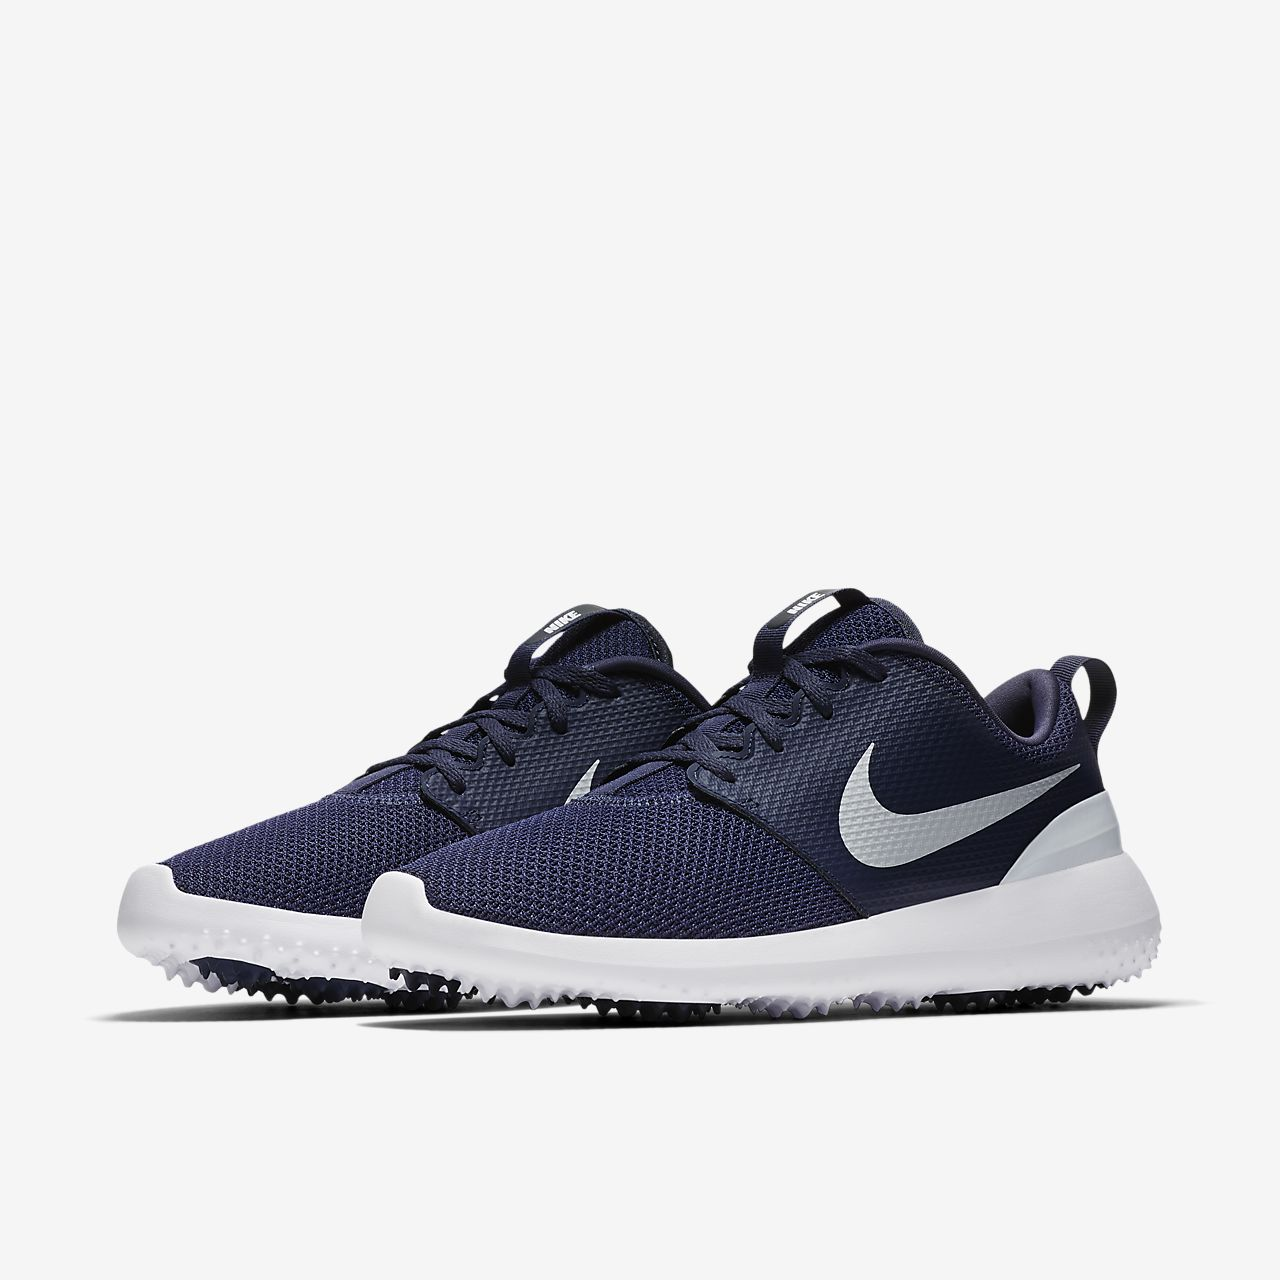 nike roshe g mens golf shoe nikecom no